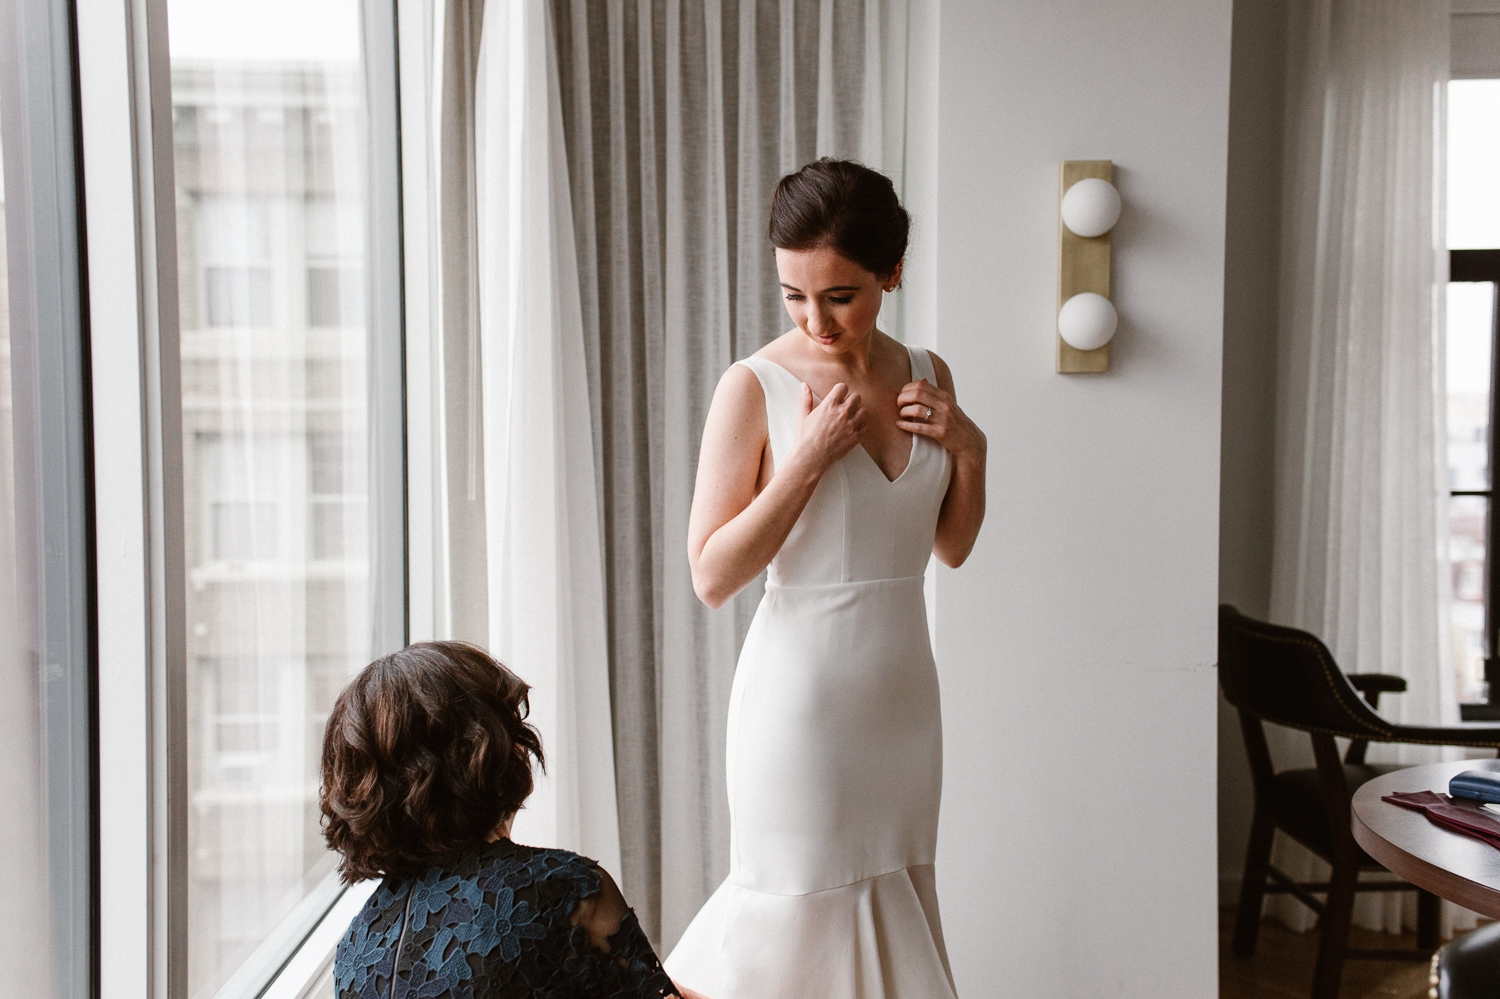 washington-dc-the-line-hotel-bride-getting-ready-photographs 19.jpg